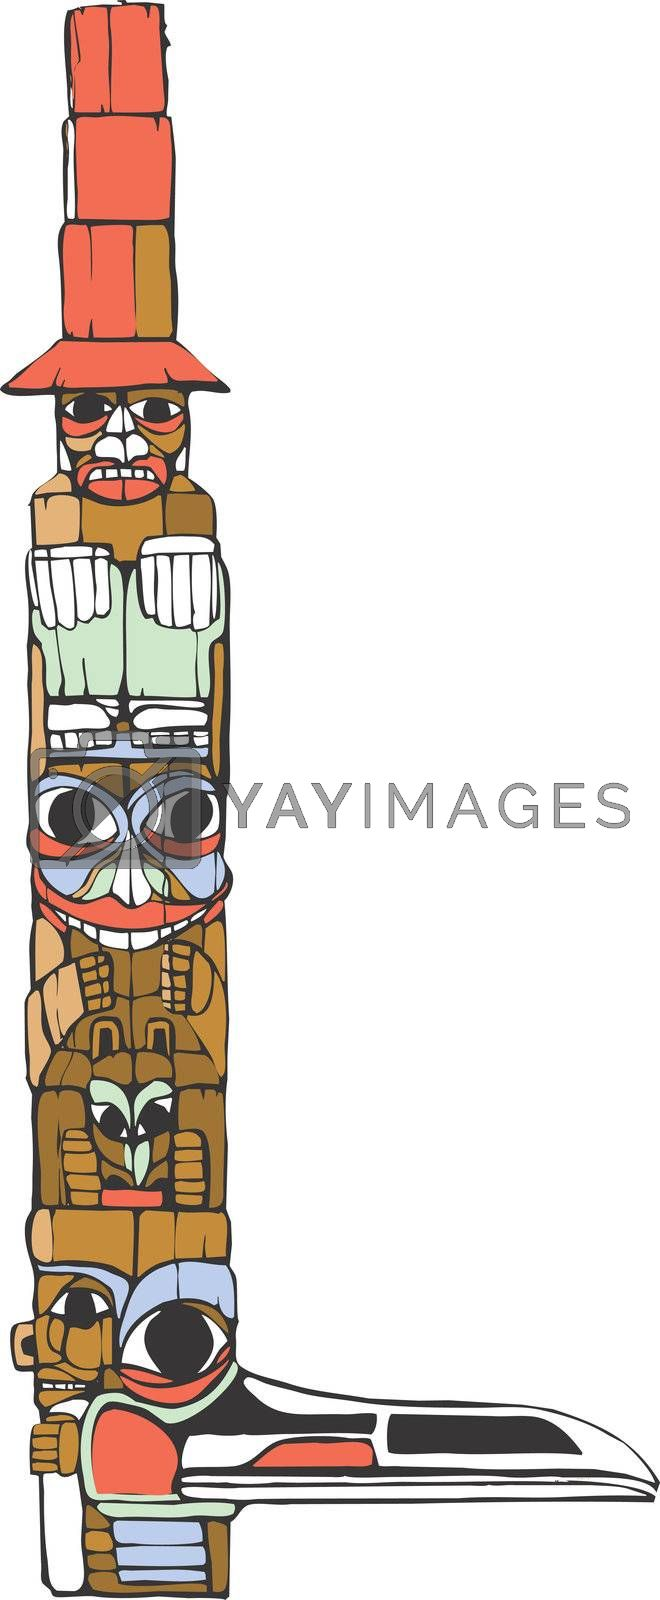 A totem pole in the style of Northwest Coast native cultures.